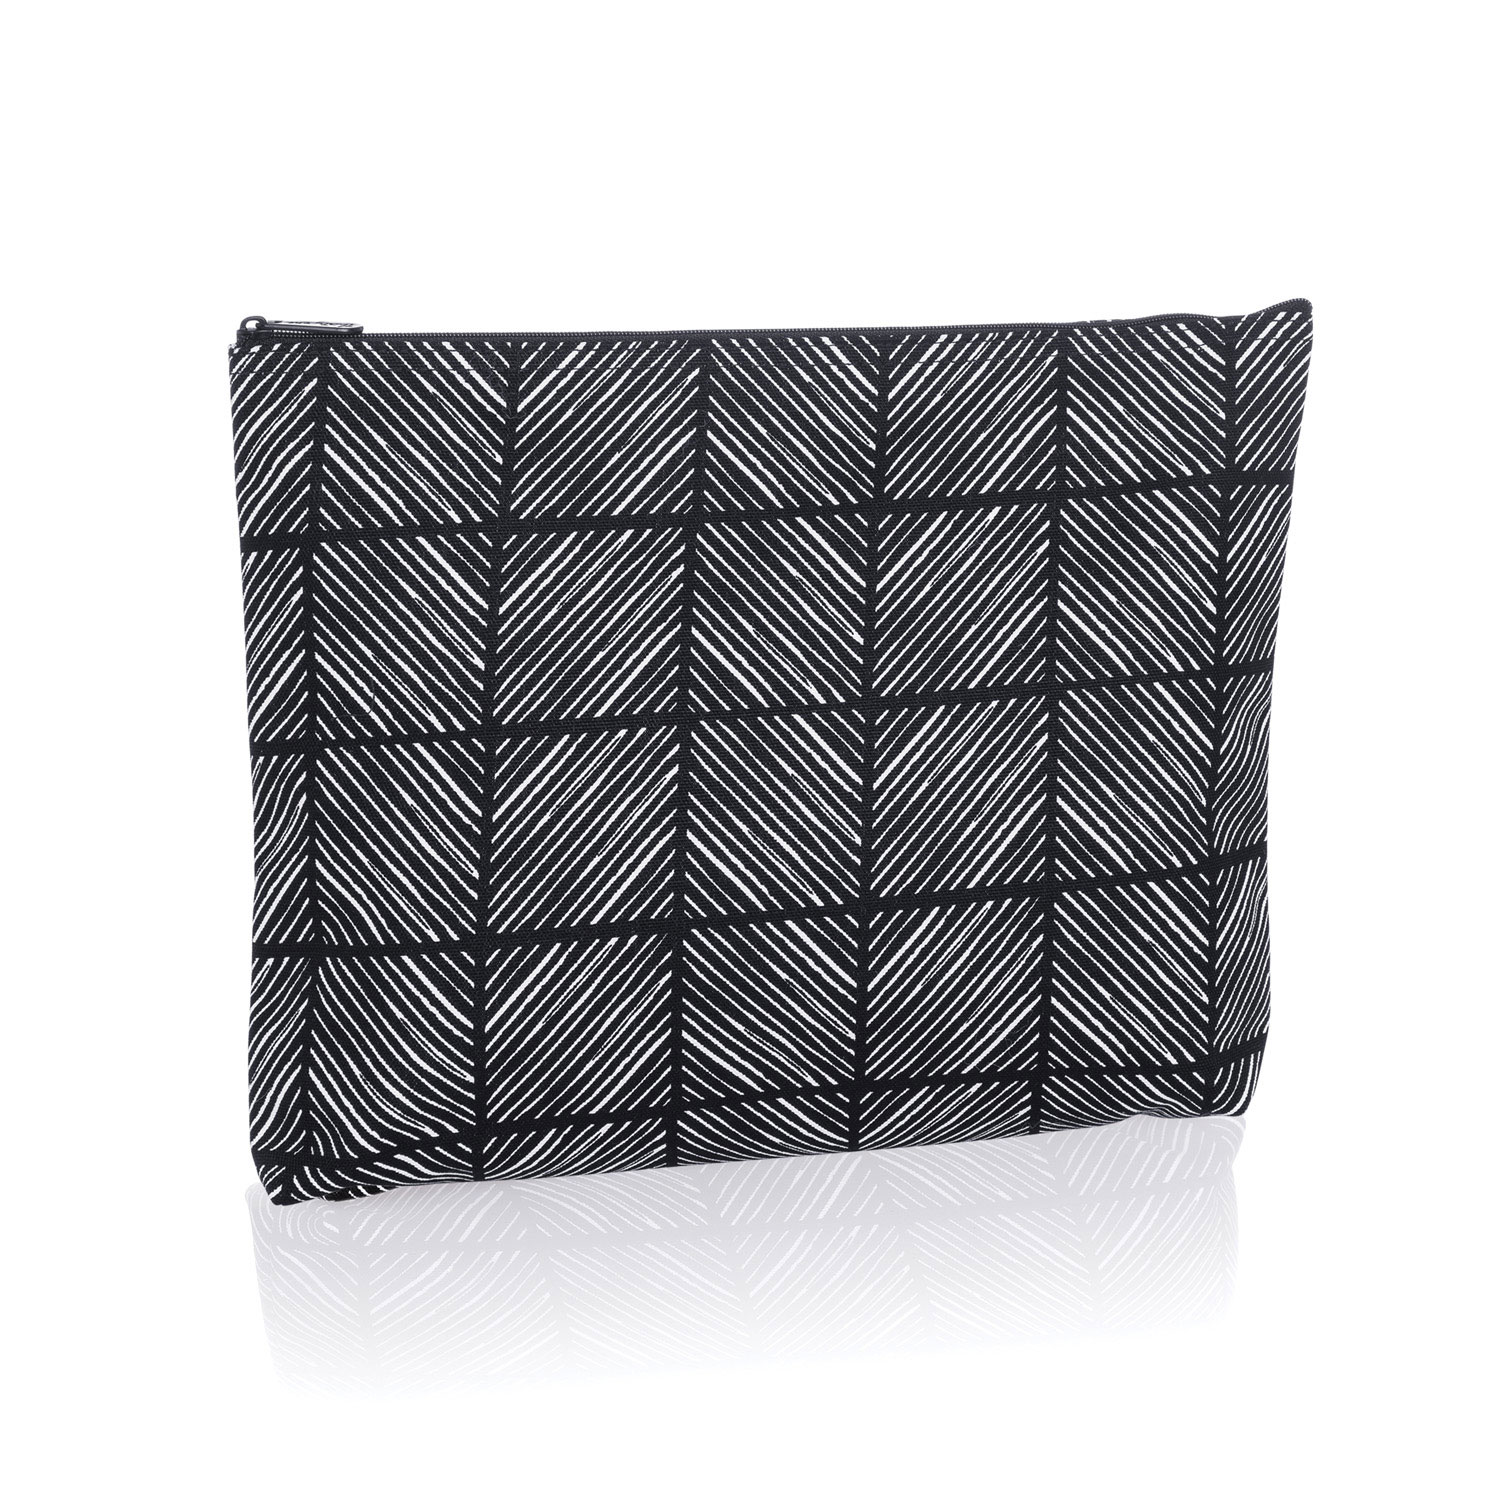 great garage business ideas - Chevron Squares Zipper Pouch Thirty e Gifts